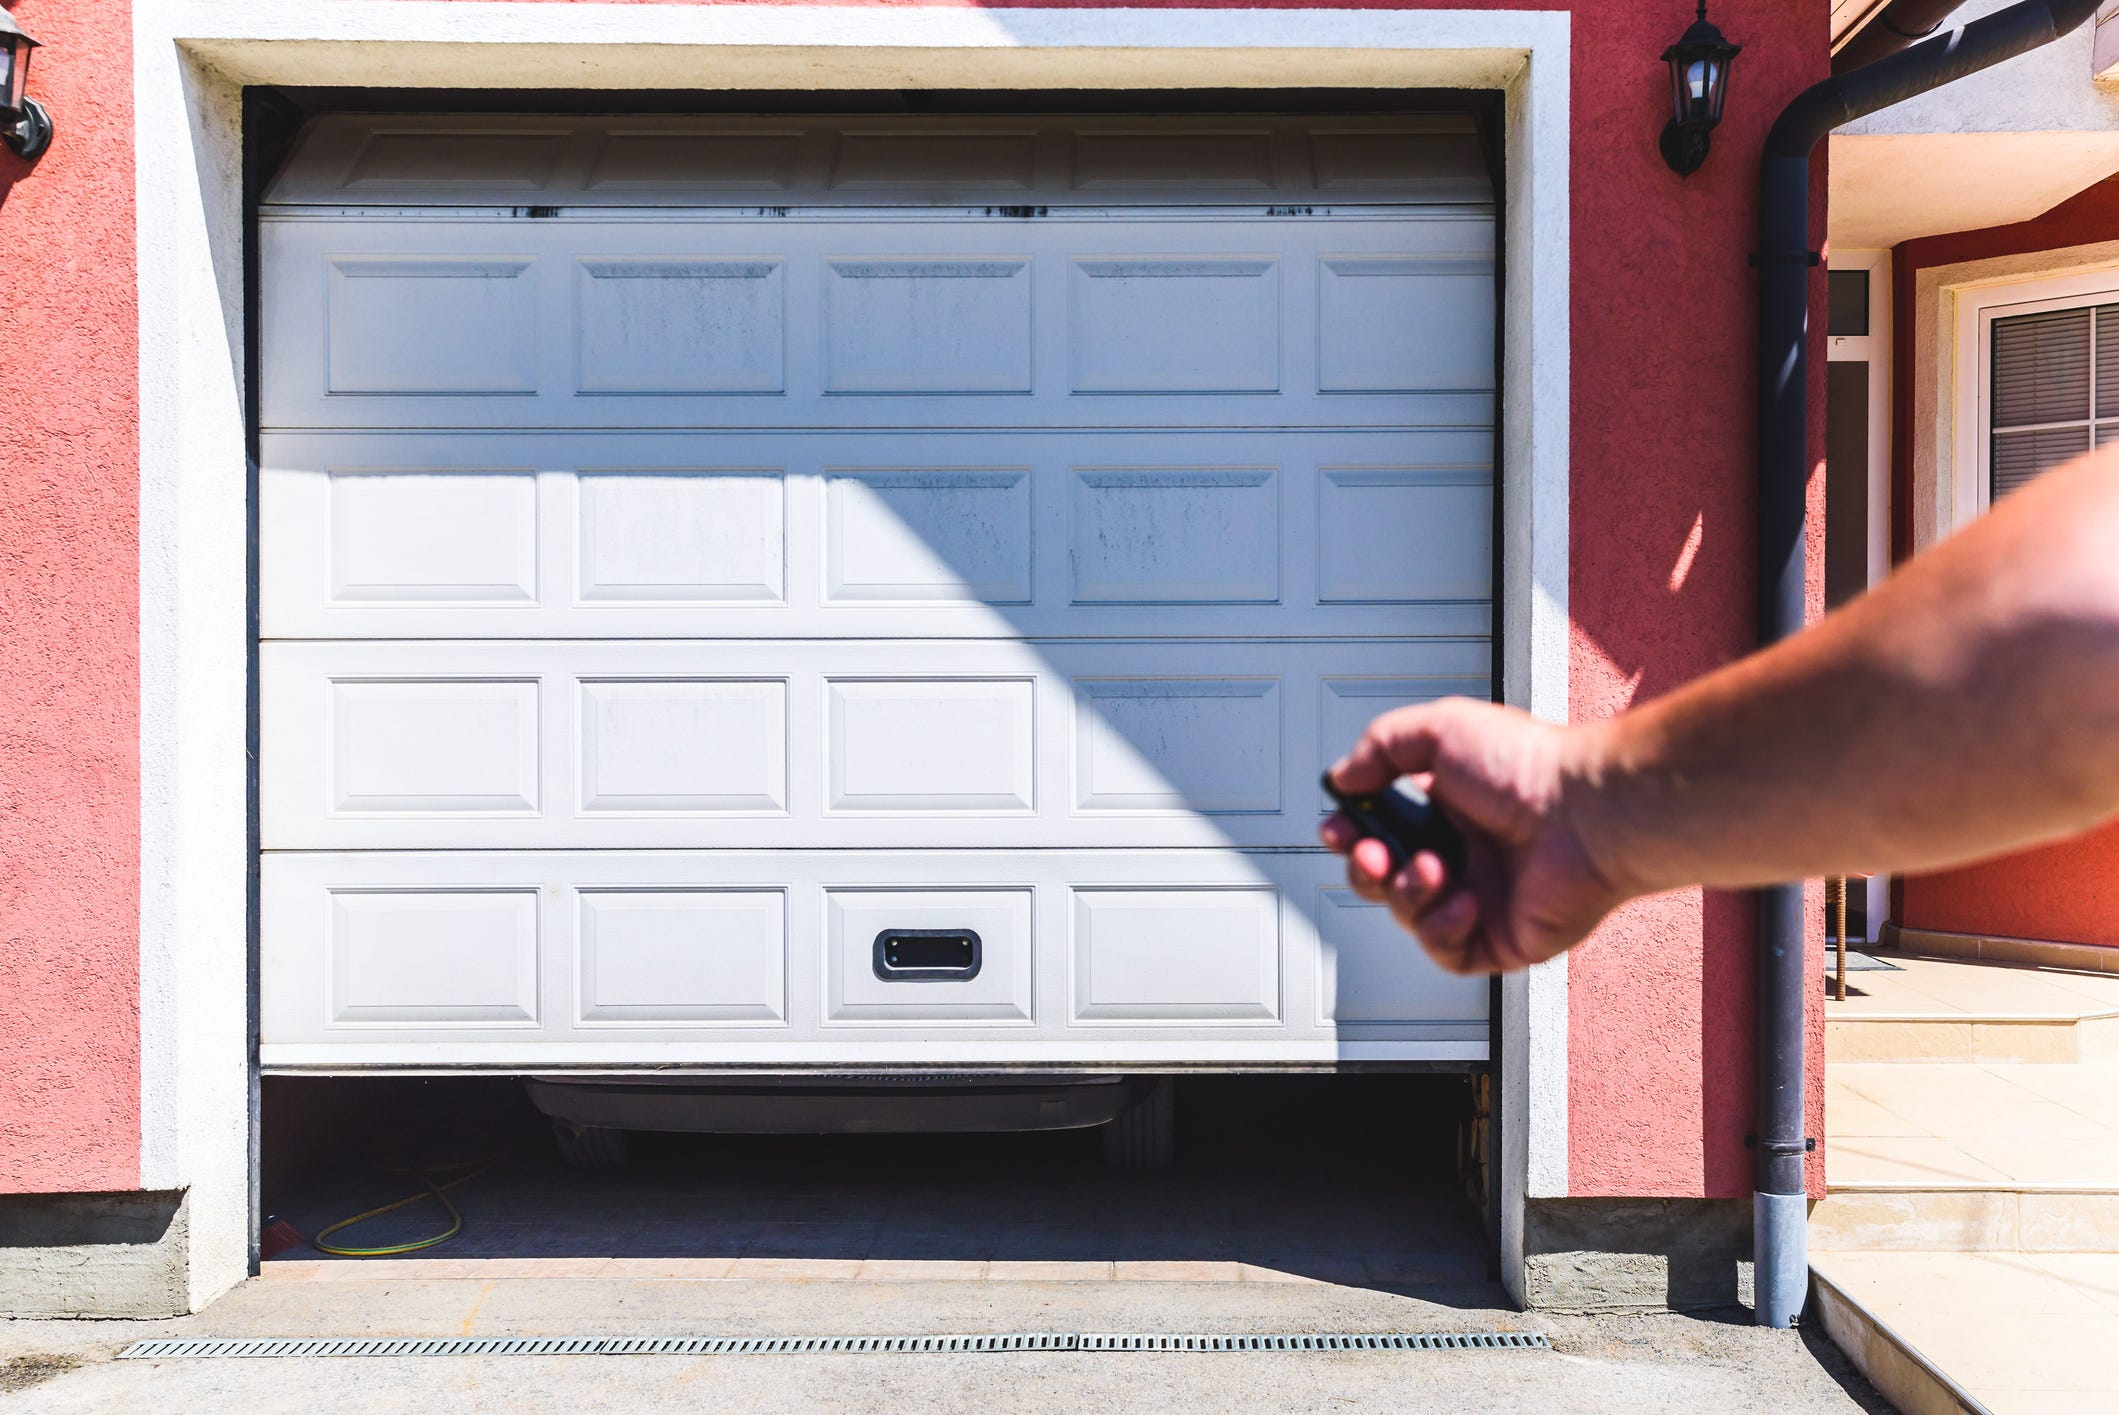 & Does opening the garage door a crack keep your house cooler?